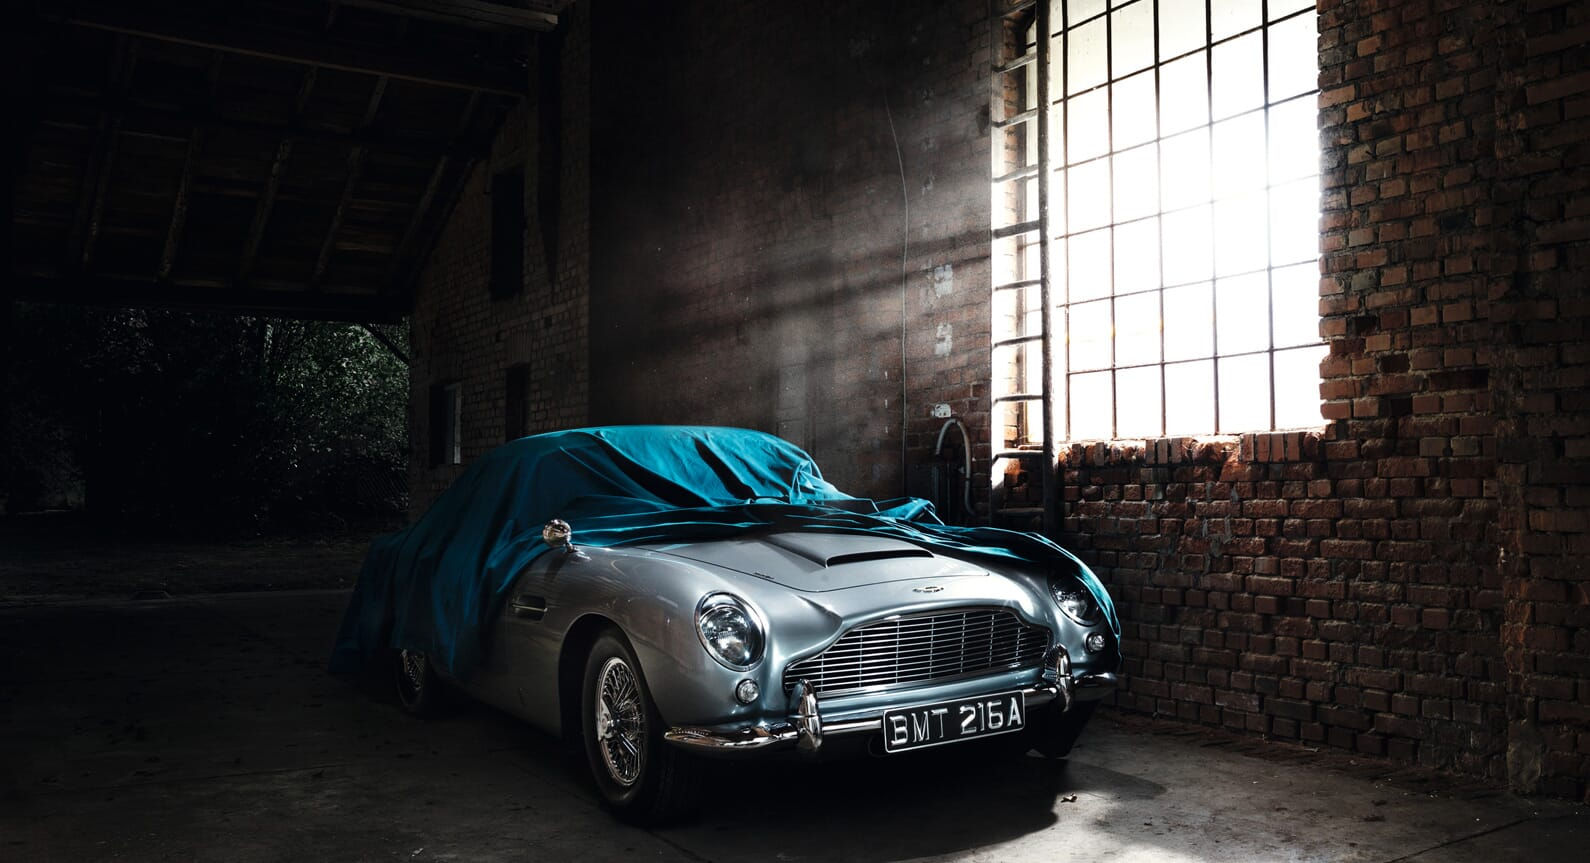 WE! Shoot It Captures Incredible Classic Cars In Garages